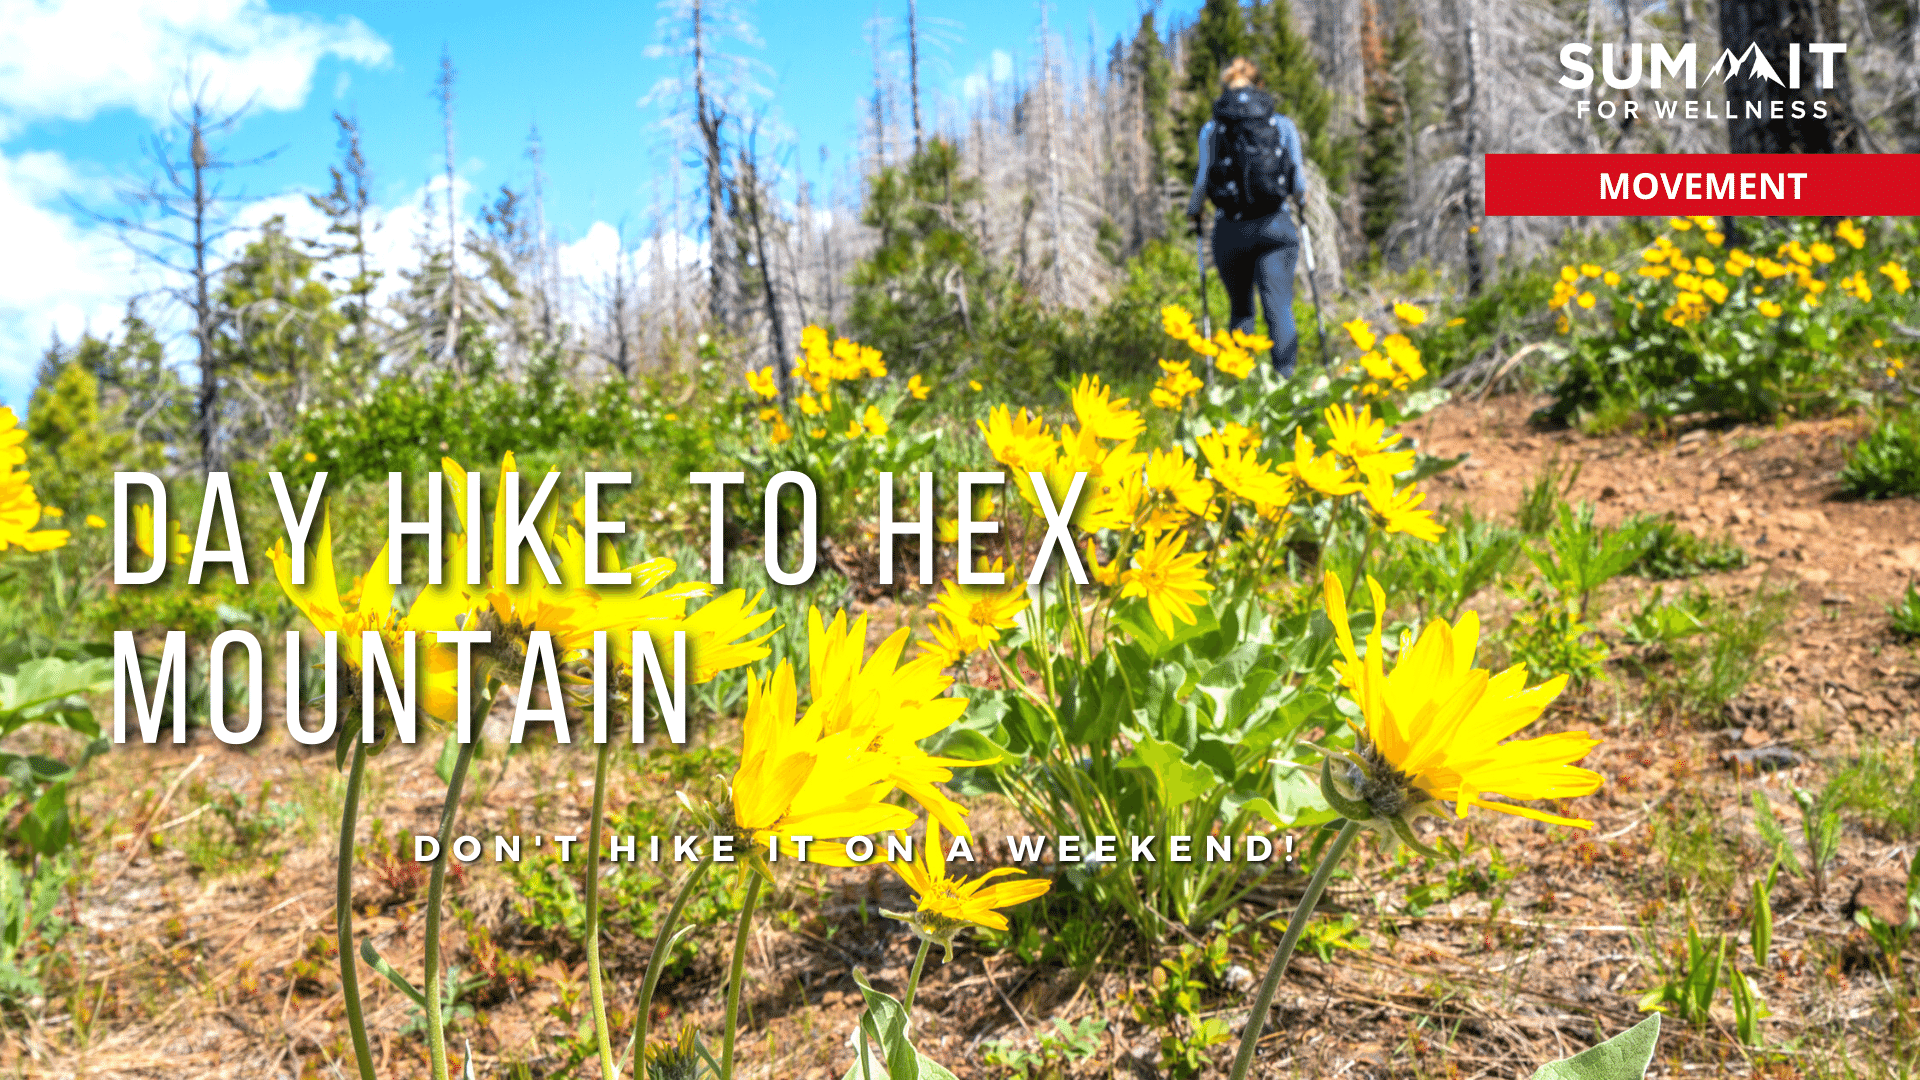 Hike to Hex Mountain to see views of the Enchantments and Teanaways